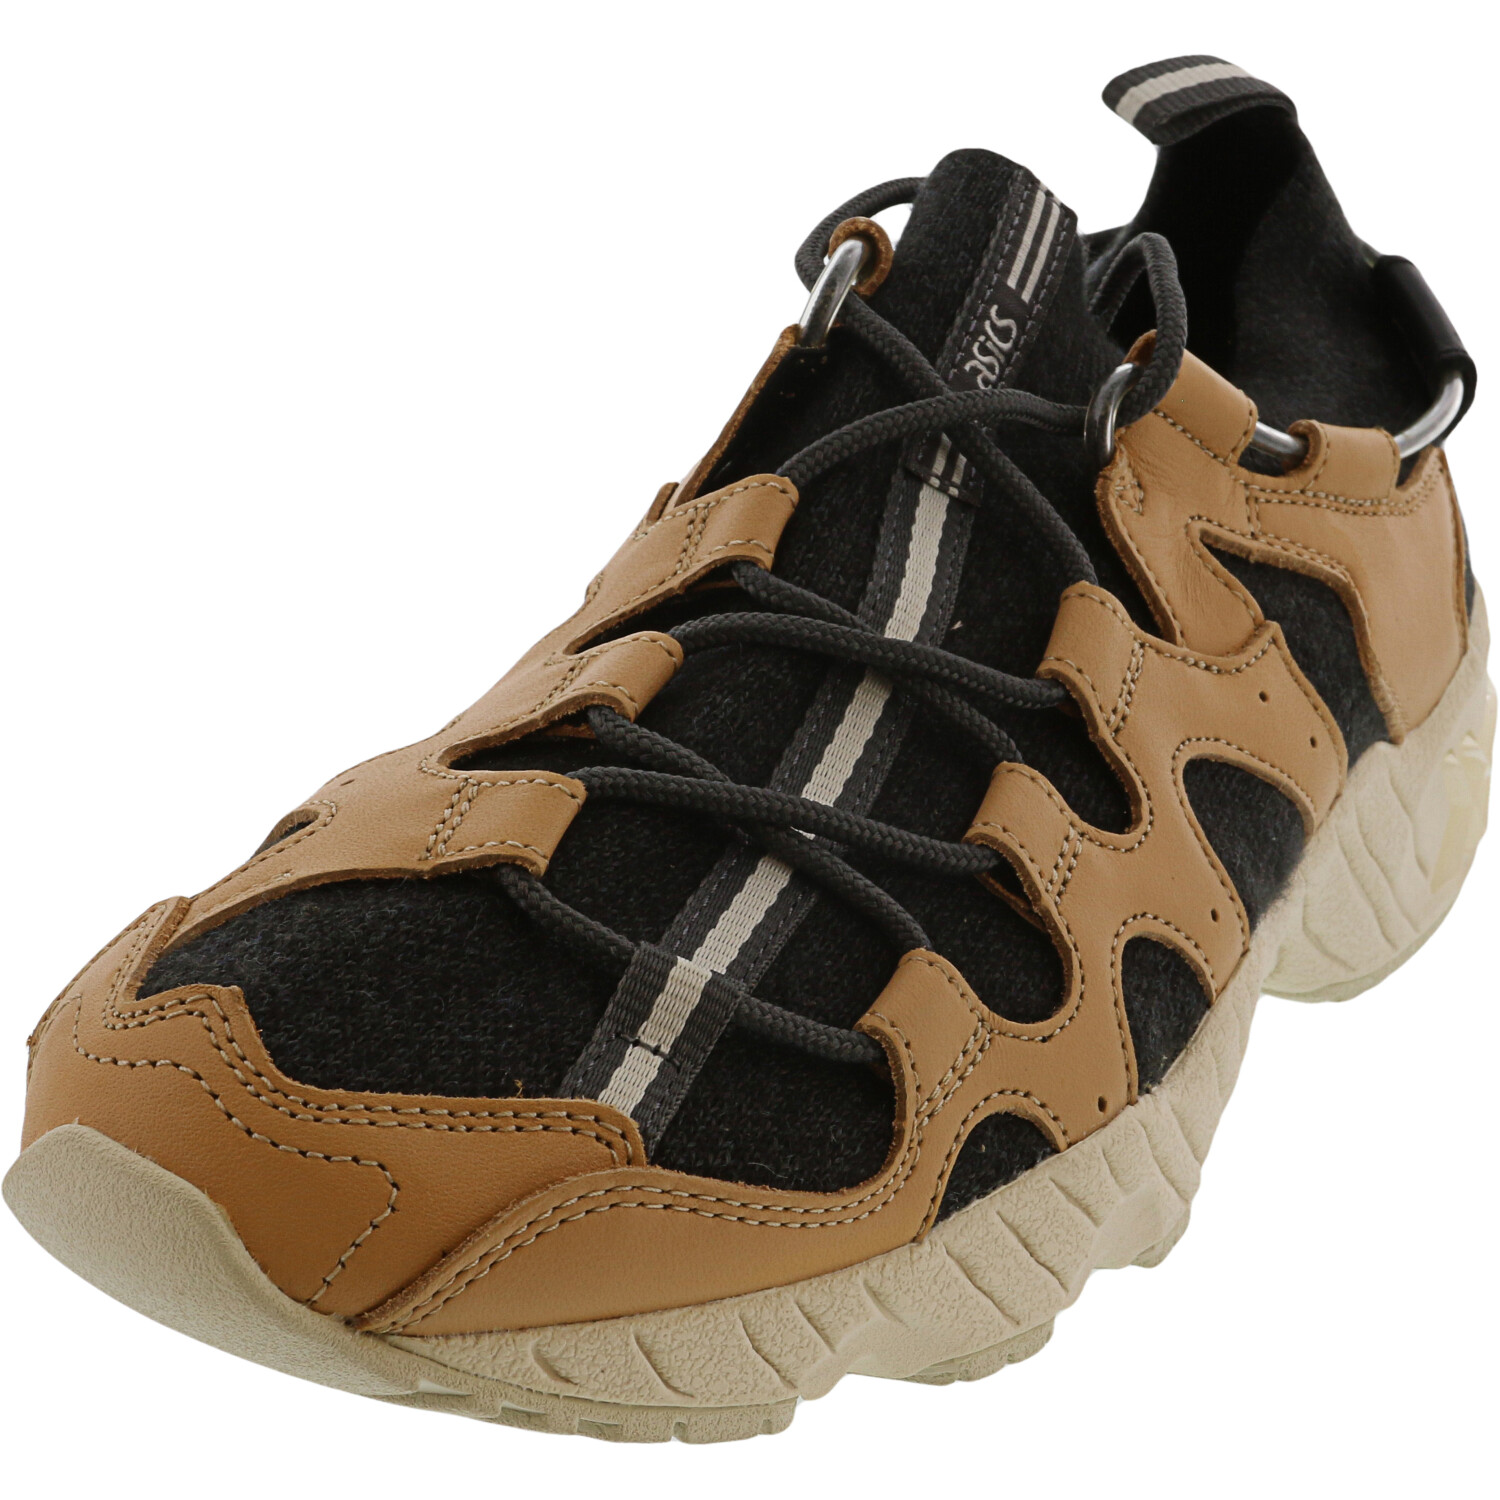 Asics Men's Gel-Mai Knit Carbon / Evening Sand Ankle-High Leather Sneaker - 10.5M